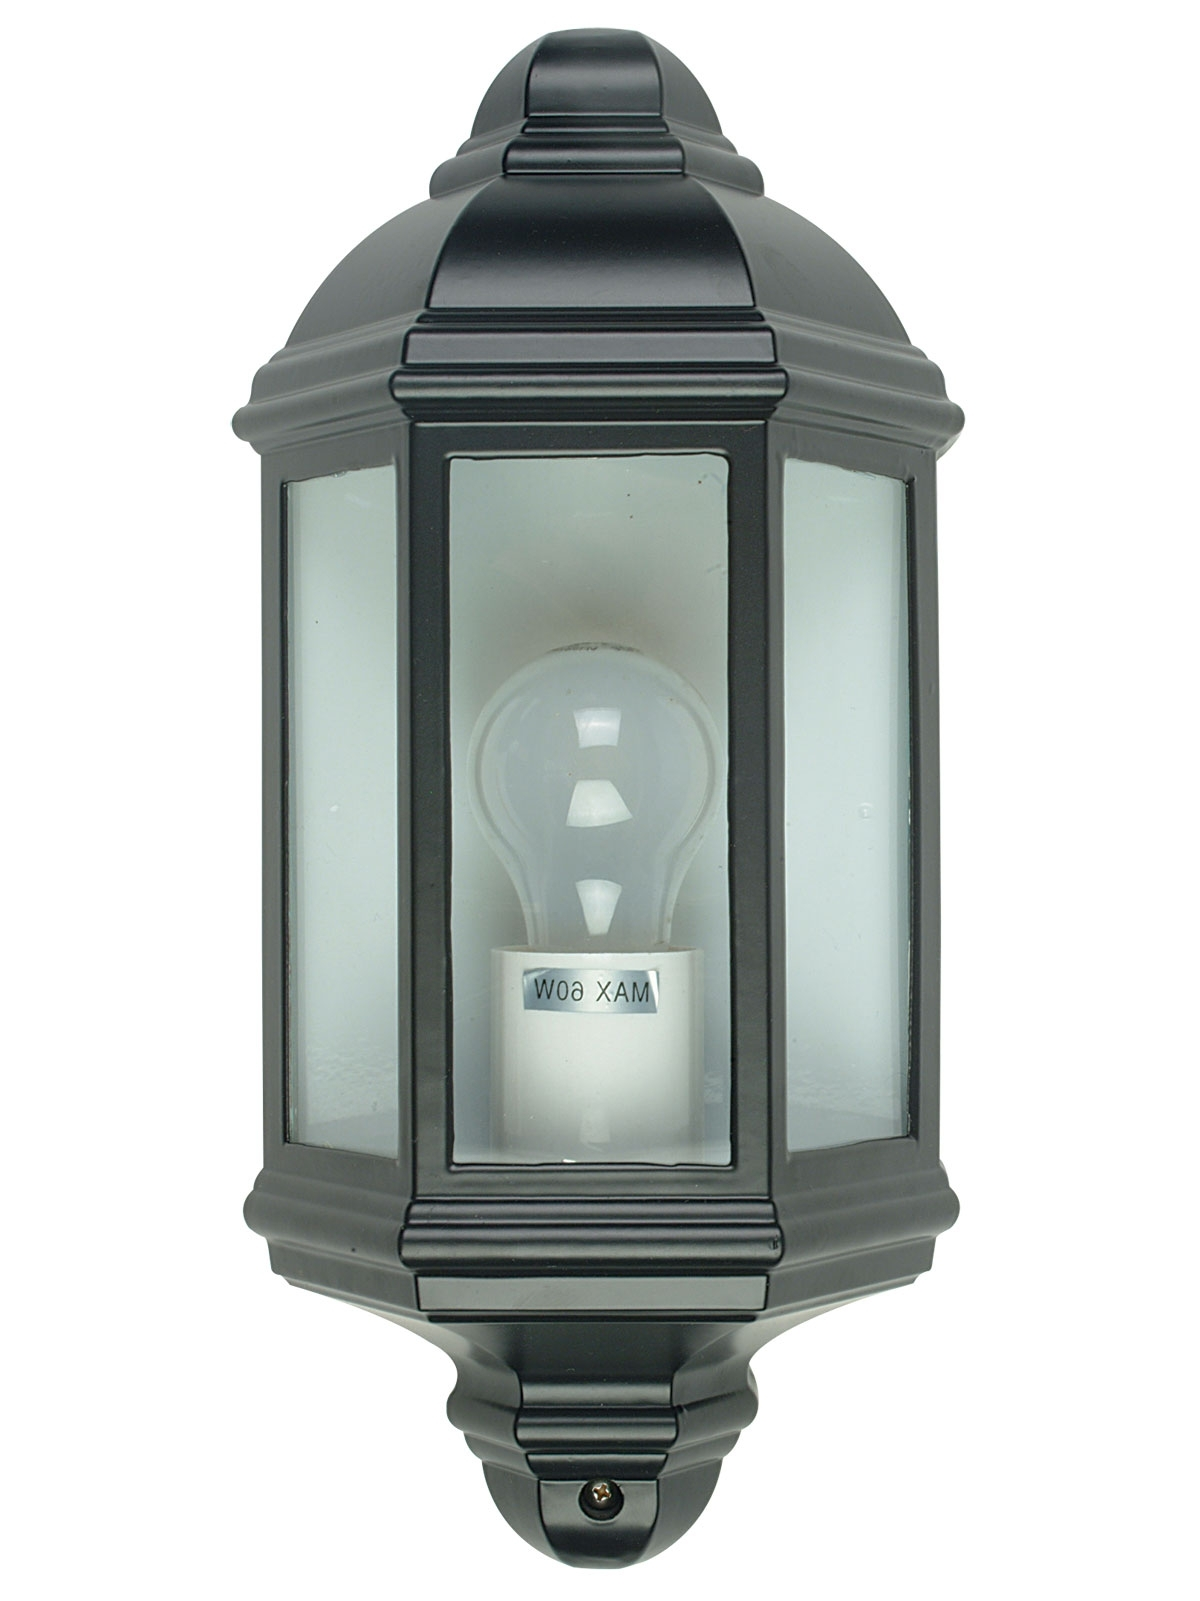 Nepean 1 Light Exterior Wall Light Black – Mx5211blk In Most Current Endon Lighting Outdoor Wall Lanterns (View 13 of 20)